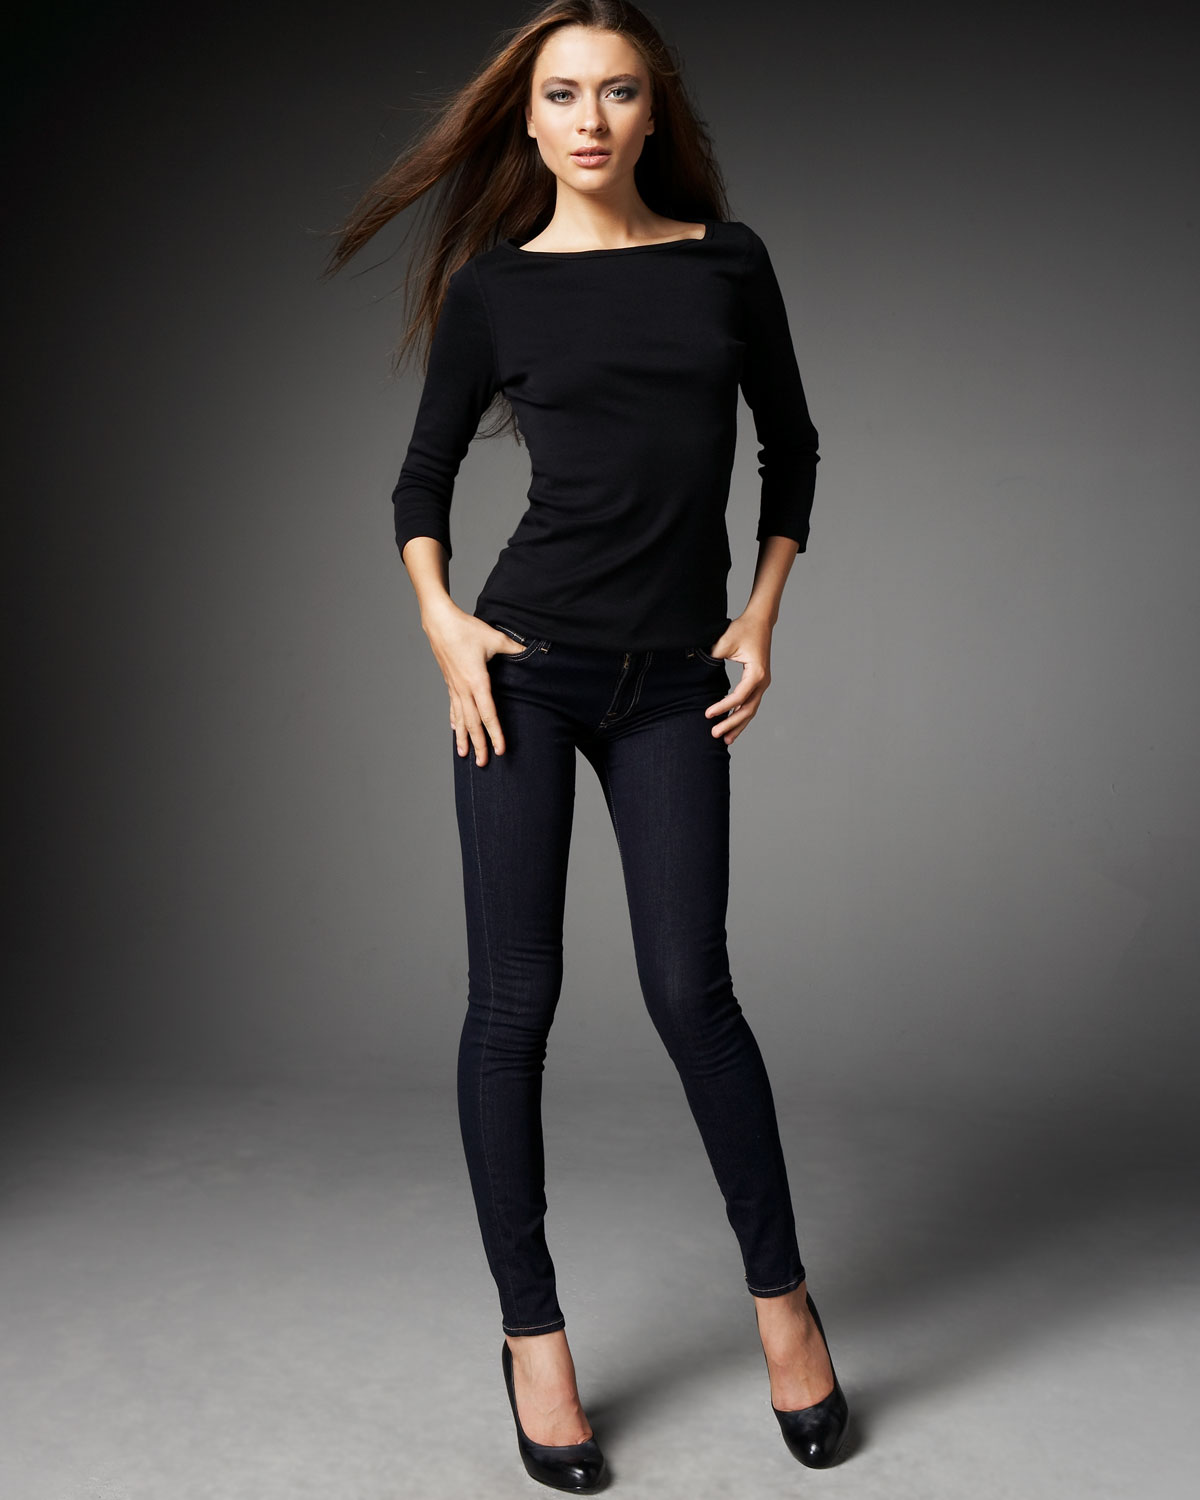 jean legging super skinny skinny girlfriend sale boys. 50% off throughout the store Available in slim and regular fits, there's a pair of girls super skinny jeans for every body type. If she loves the slim fit but wants a little more leg room, try the Skinny Jeans.